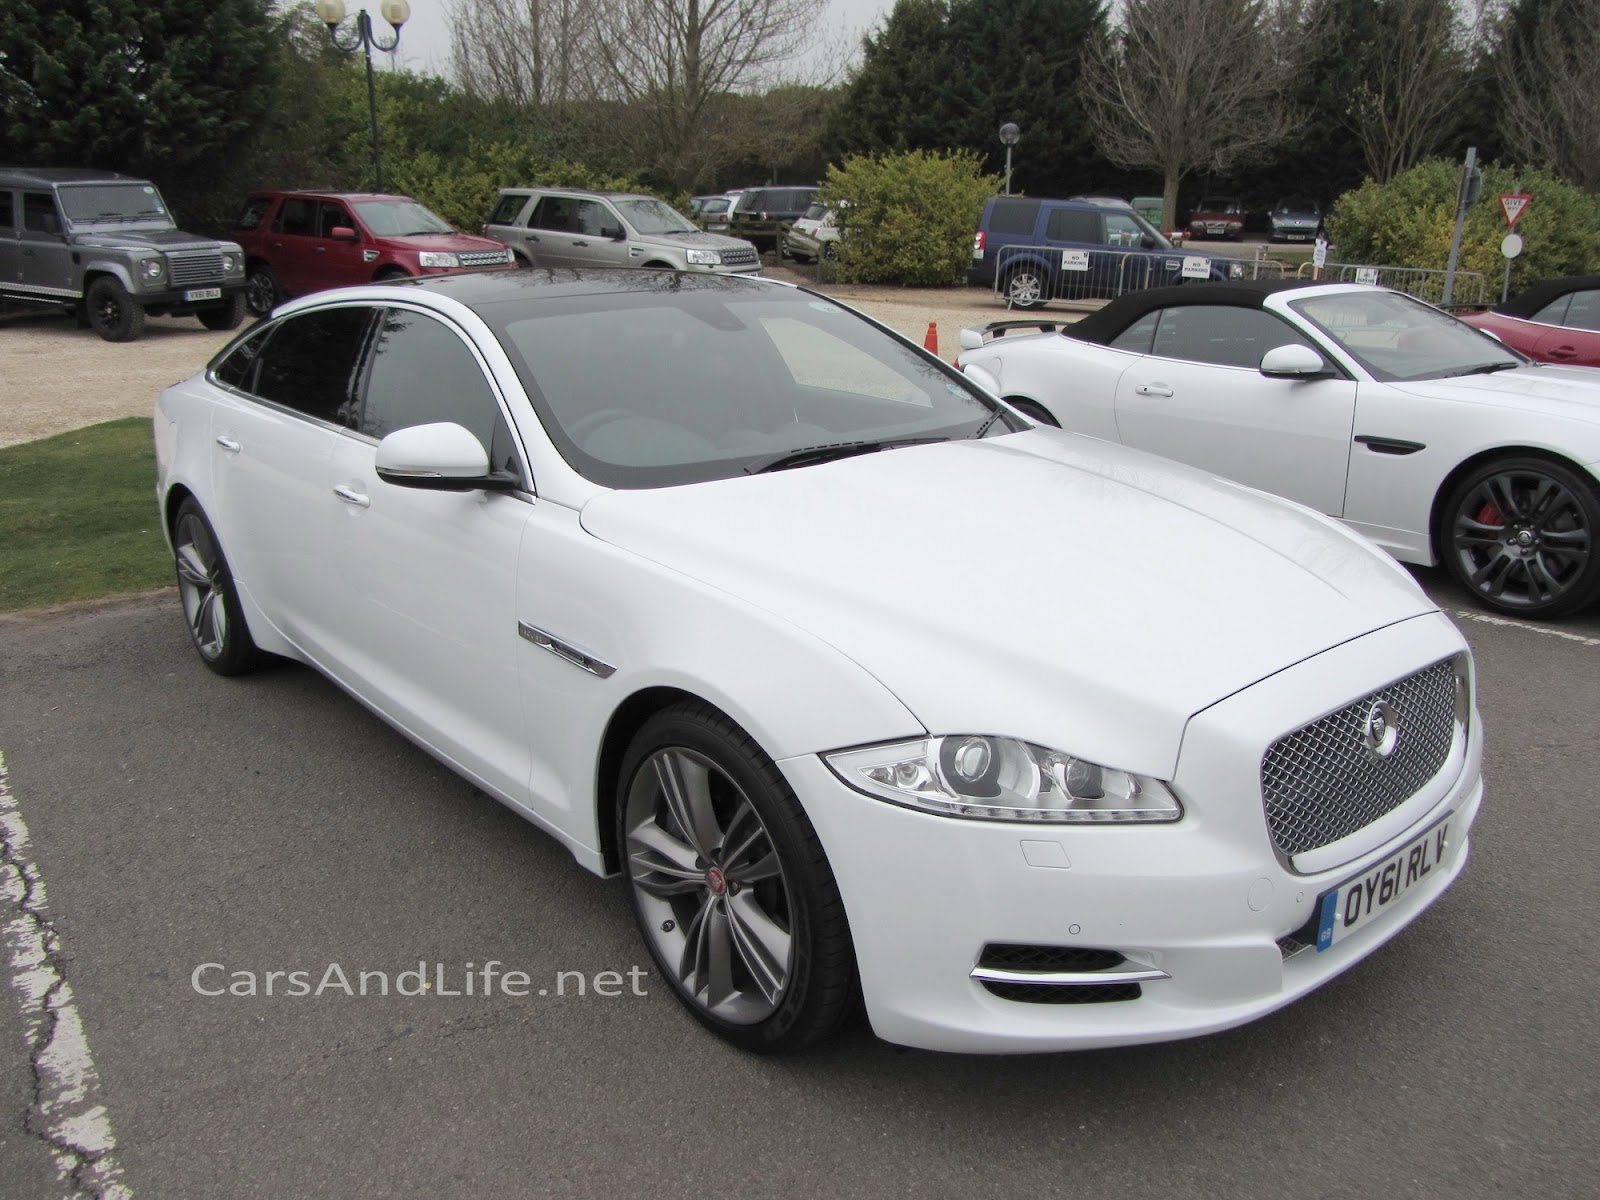 Cars Life   Cars Fashion Lifestyle Blog  Jaguar XJ with 2 lt